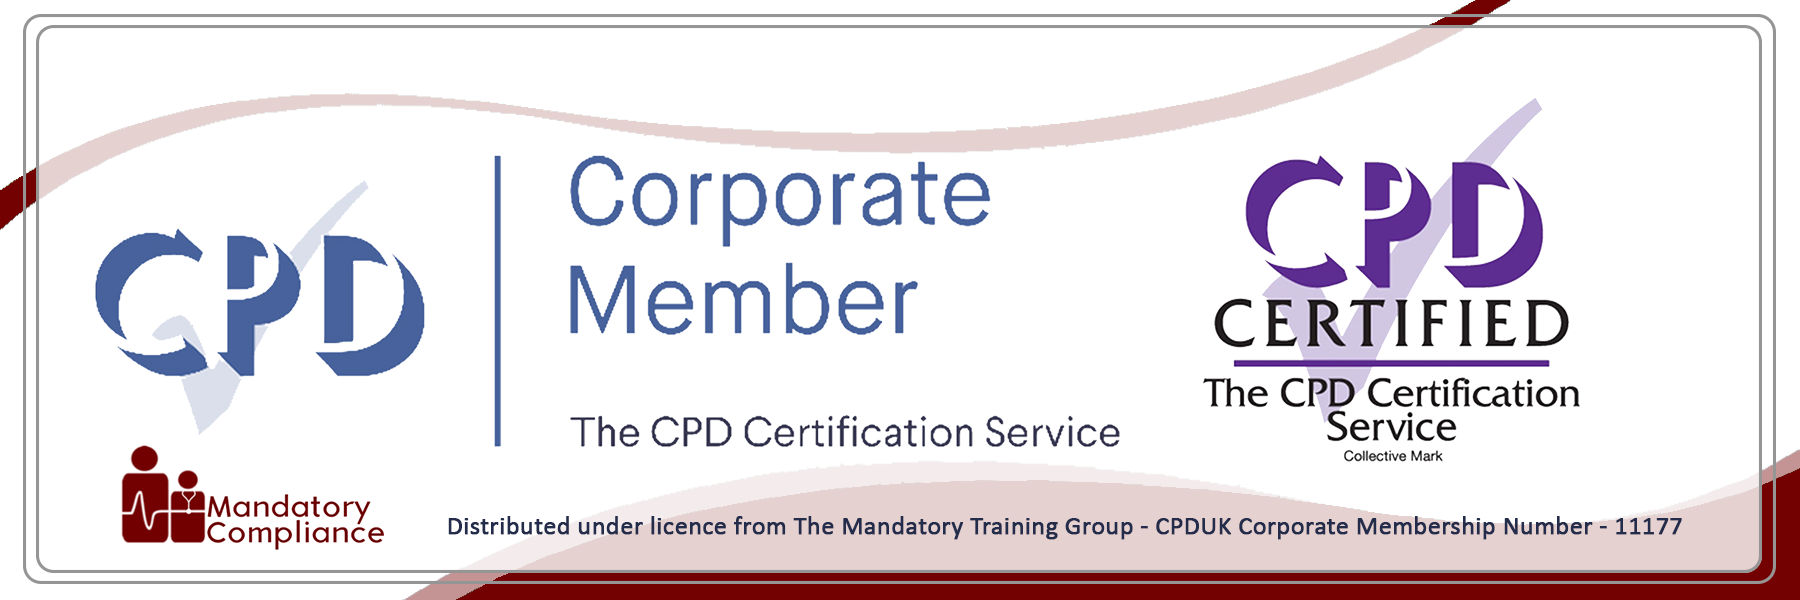 Performance Management - Online Training Course - CPD Accredited - Mandatory Compliance UK -